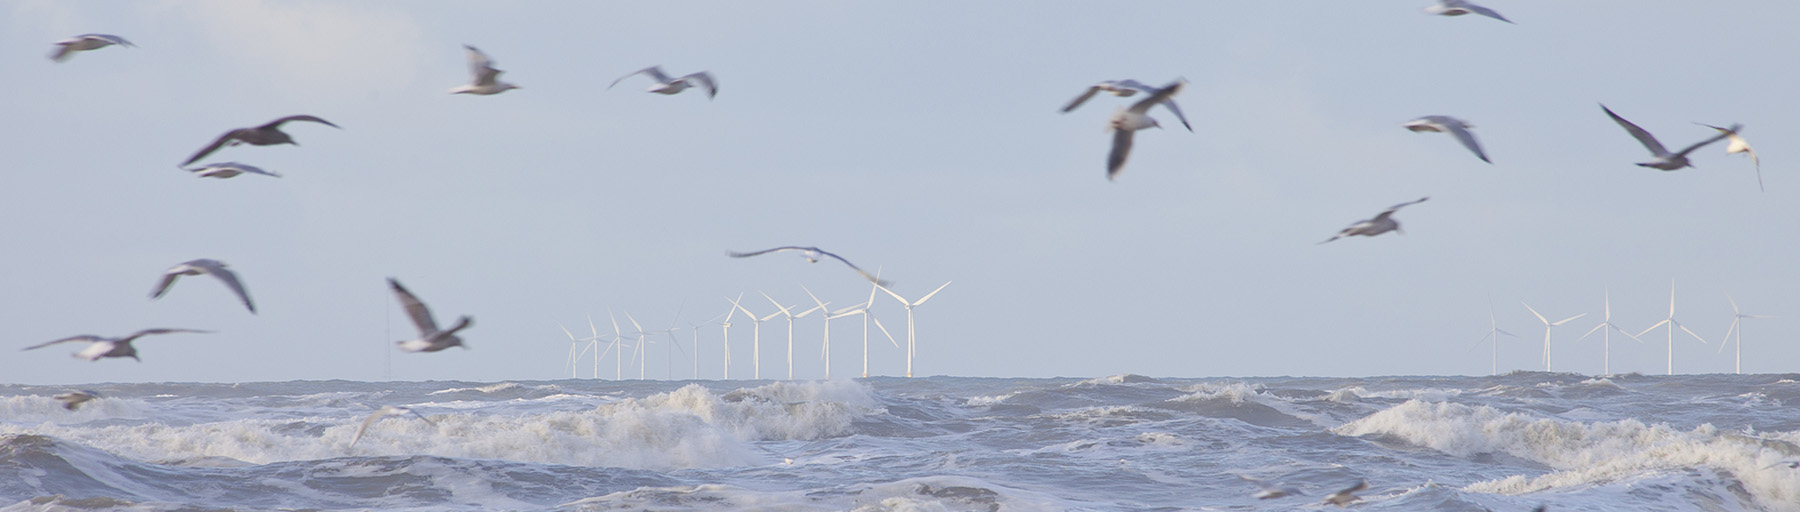 Birds and offshore wind farms